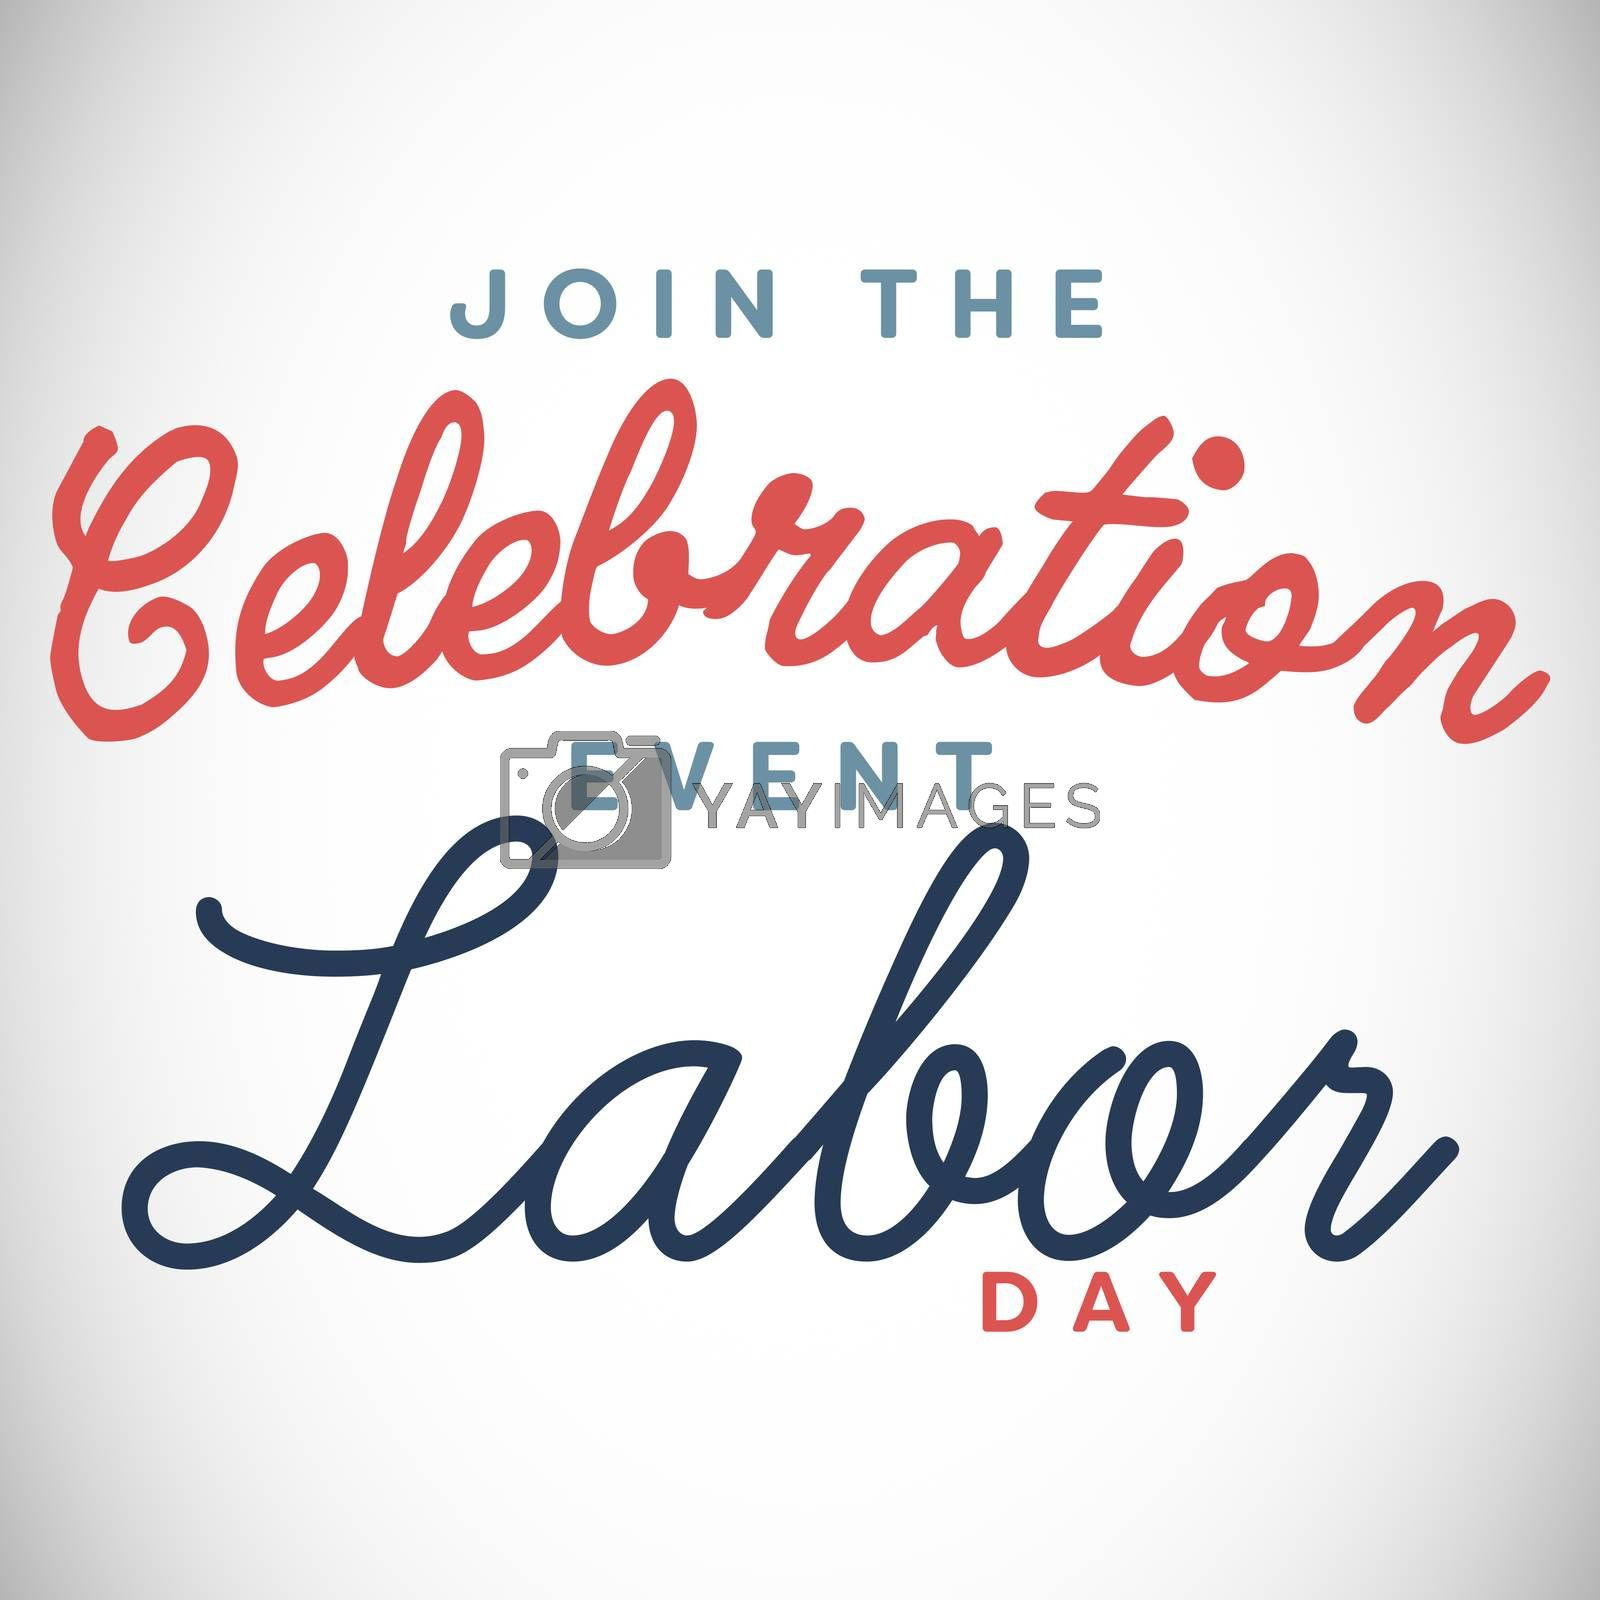 Digital composite image of join celebratio event labor day text by Wavebreakmedia